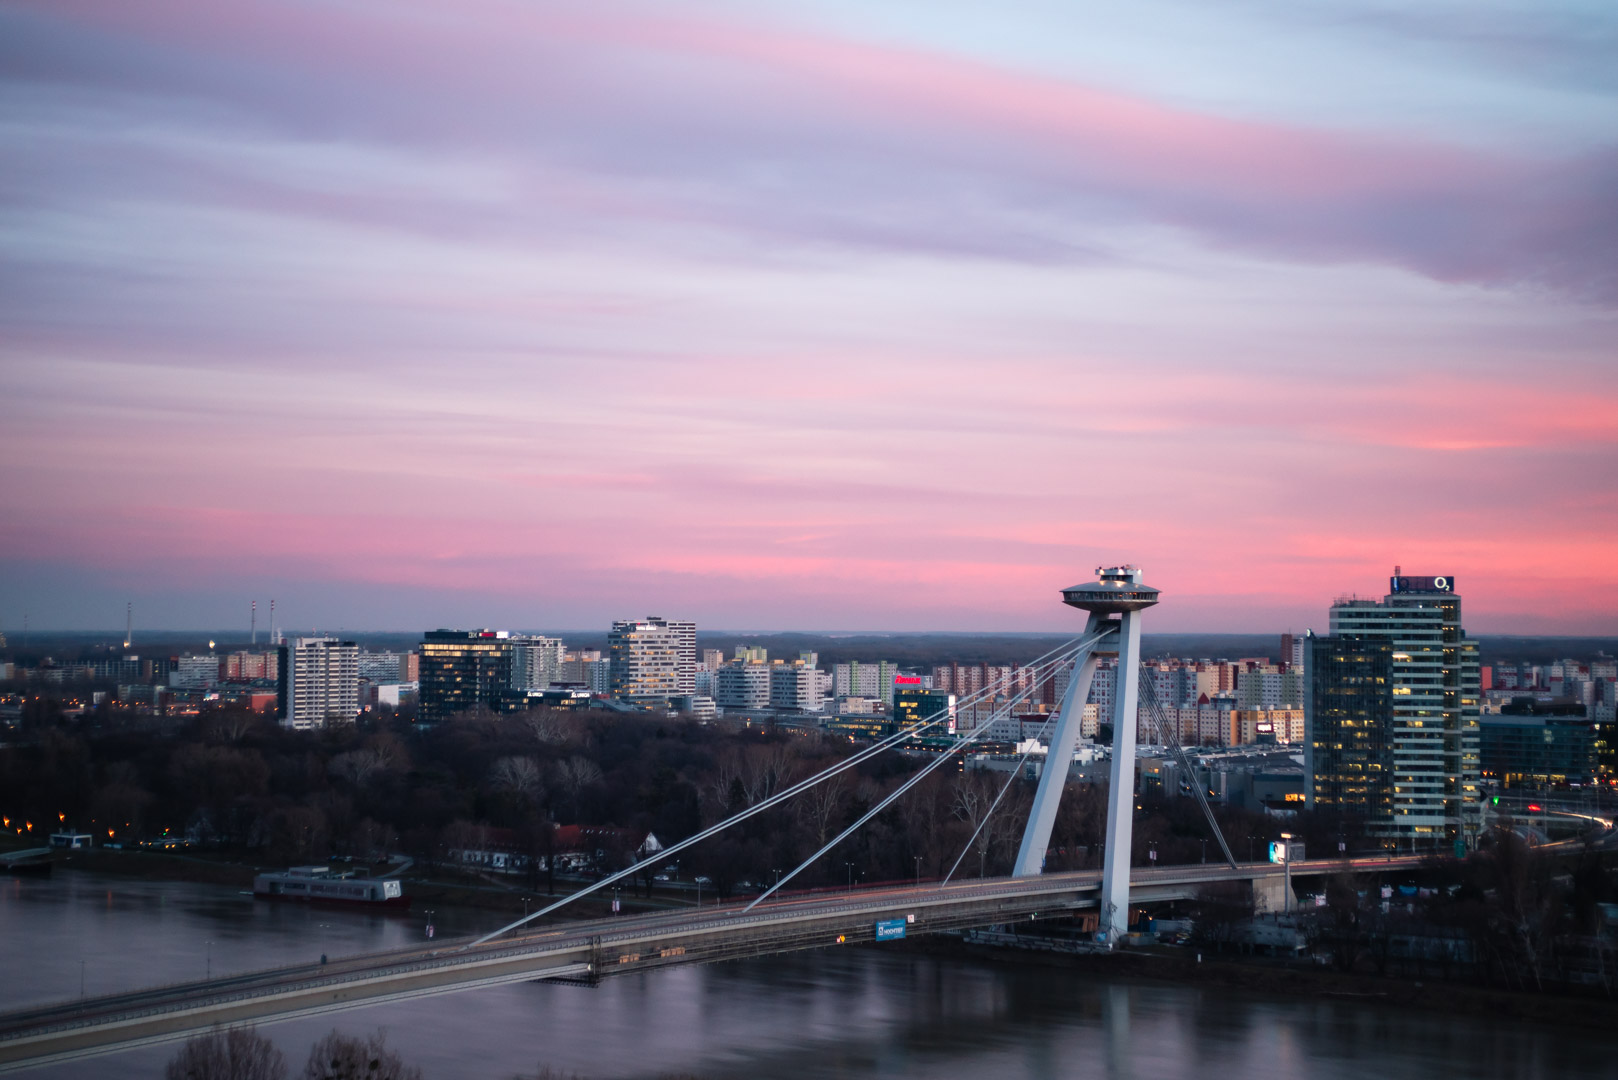 Bridge Sunset UFO Bridge Most SNP Bratislava Slovakia Urban City Slovakia Urban City Eastern Europe